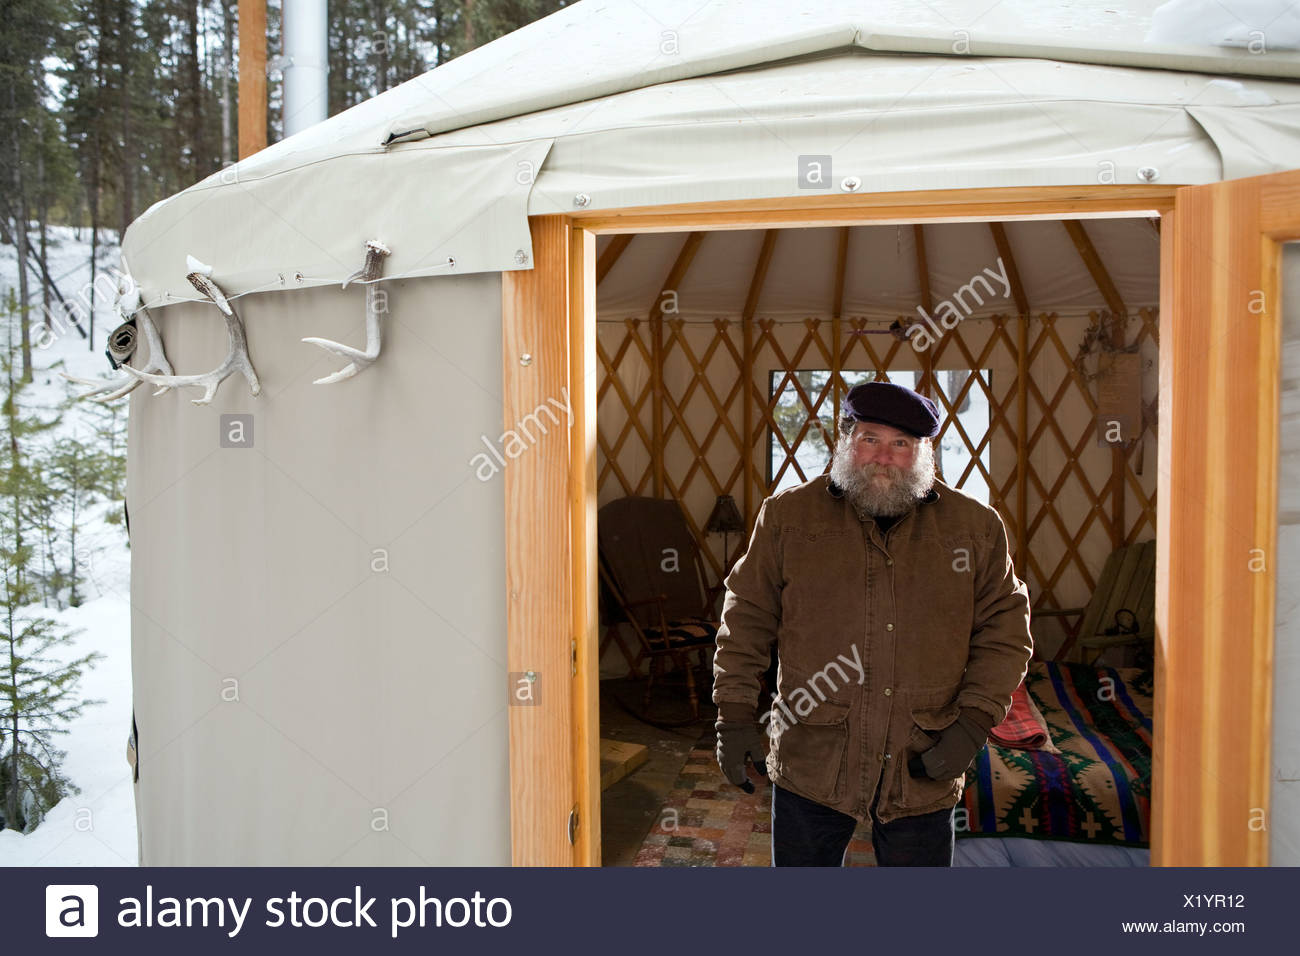 Bearded man with hat in sparse yurt, Whitefish, Montana